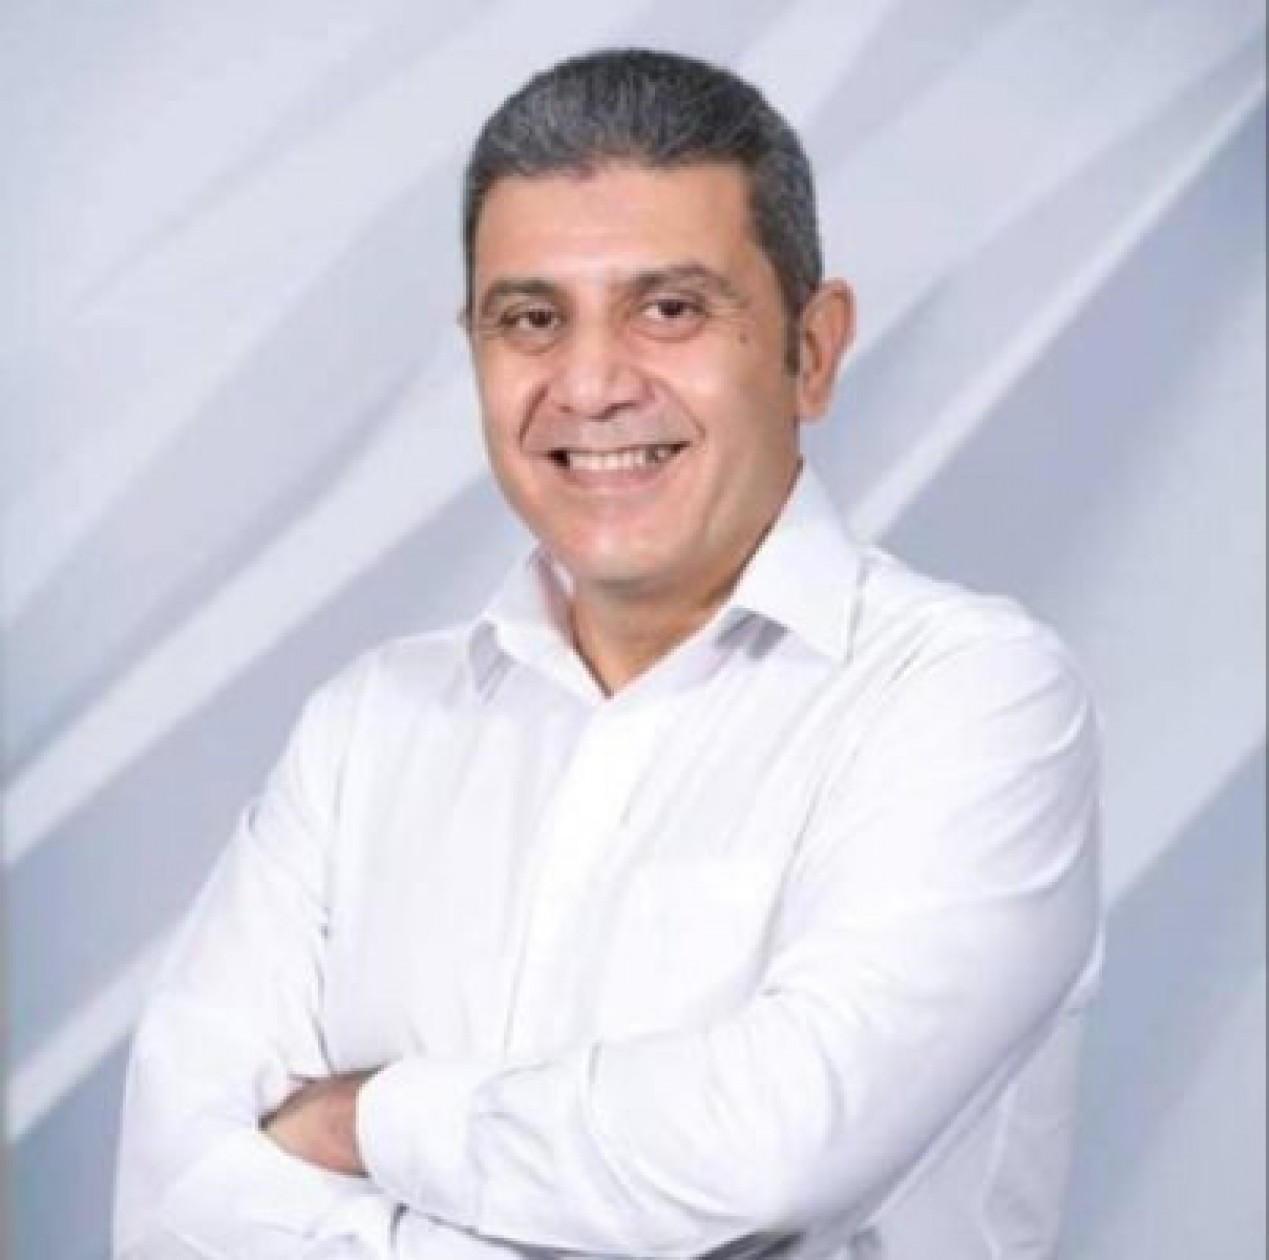 Ahmed El-Saeed is now the Managing Director of Powerline!